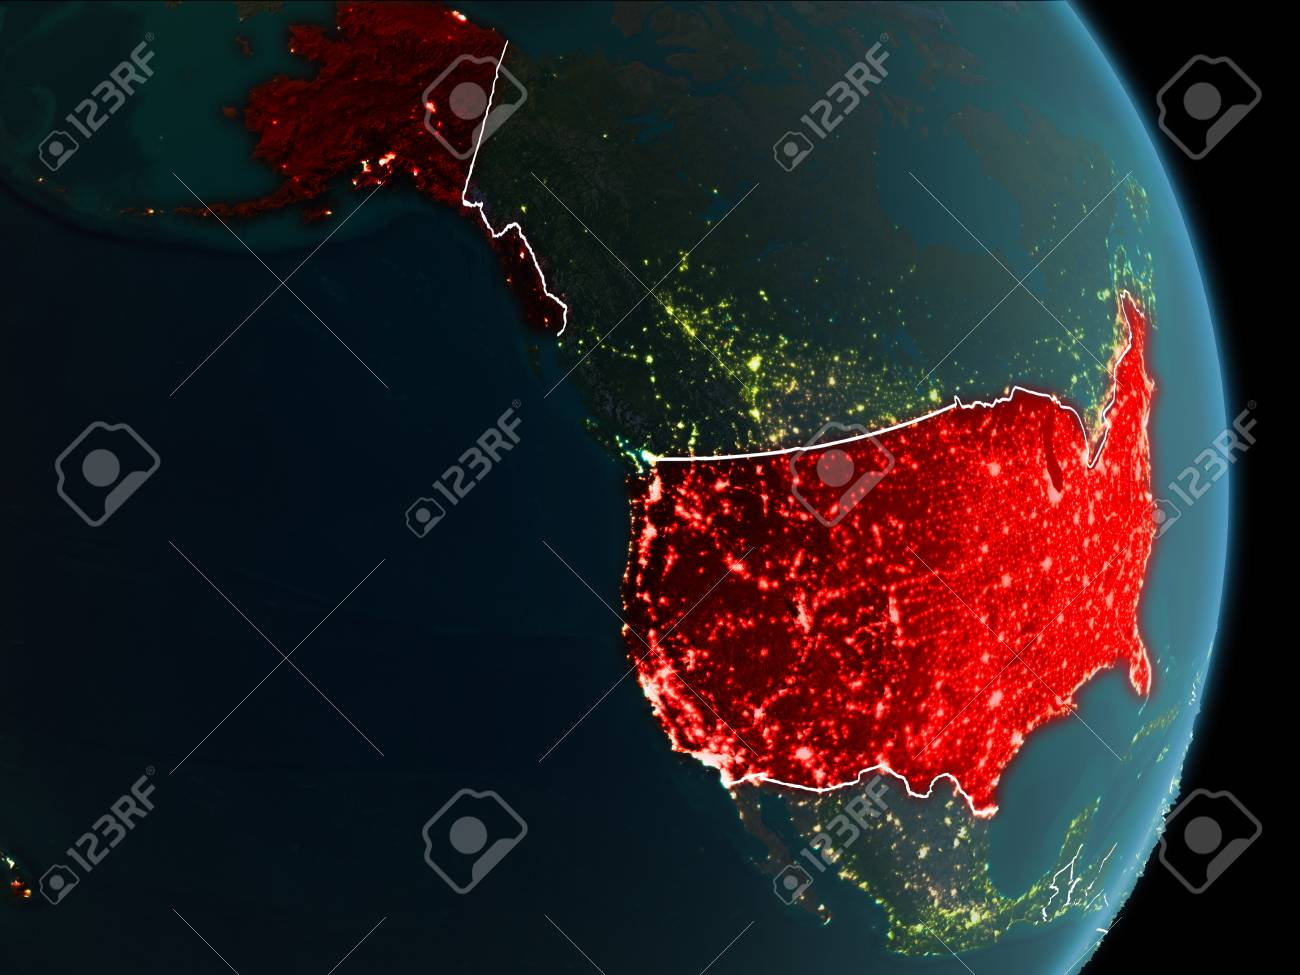 Map Of Usa At Night.Map Of Usa In Red As Seen From Space On Planet Earth At Night